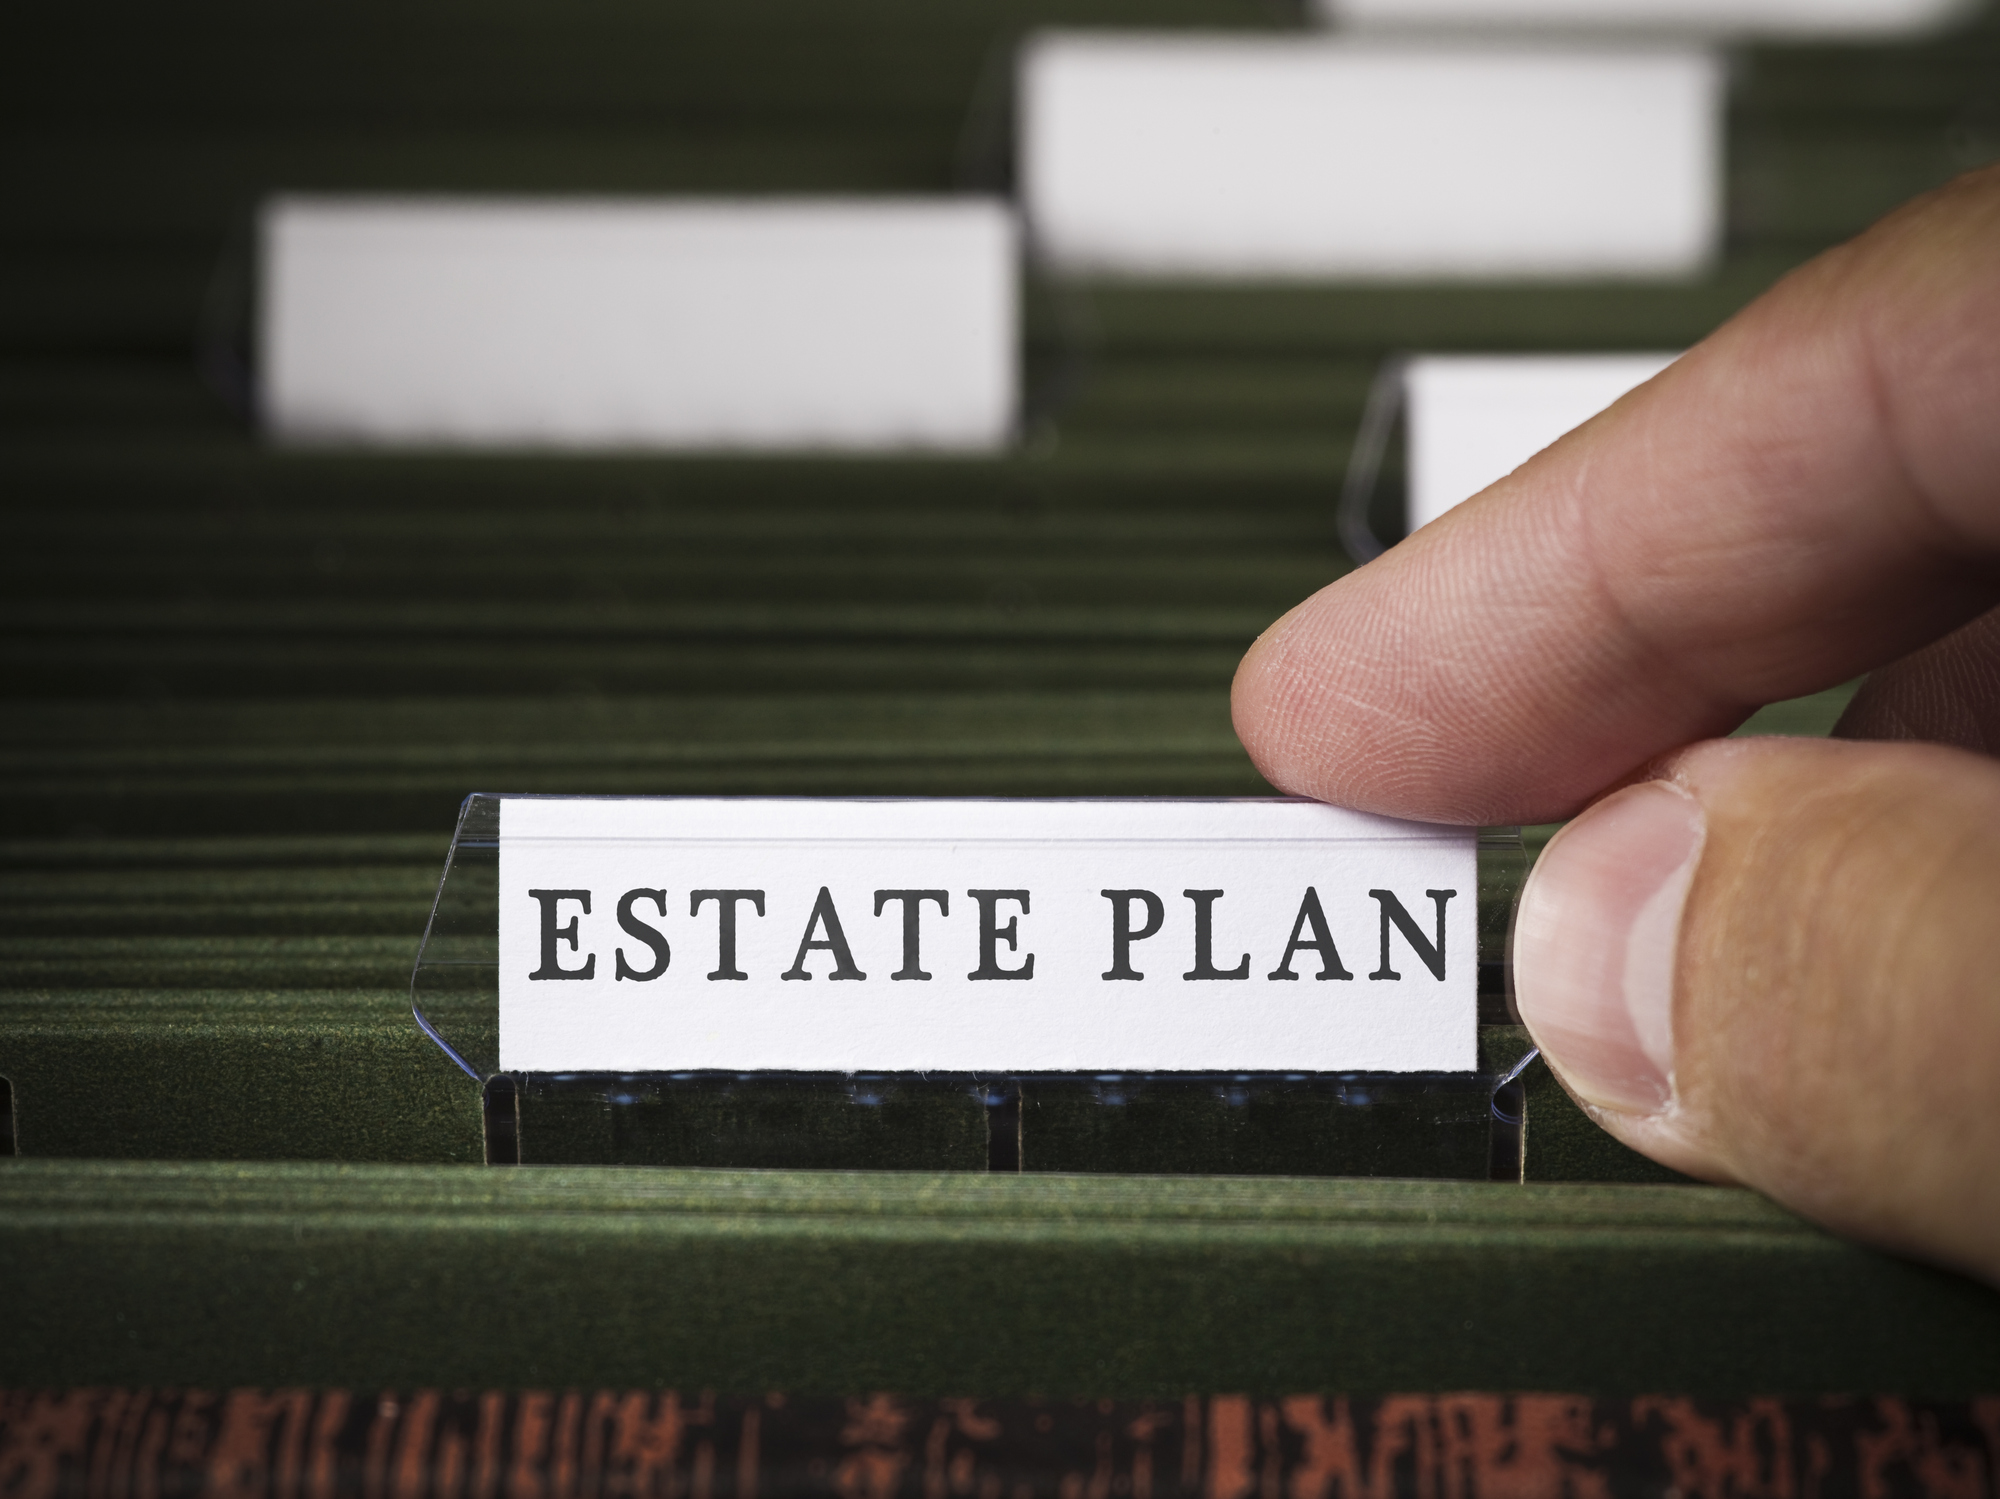 Five Top Reasons To Make an Estate Plan